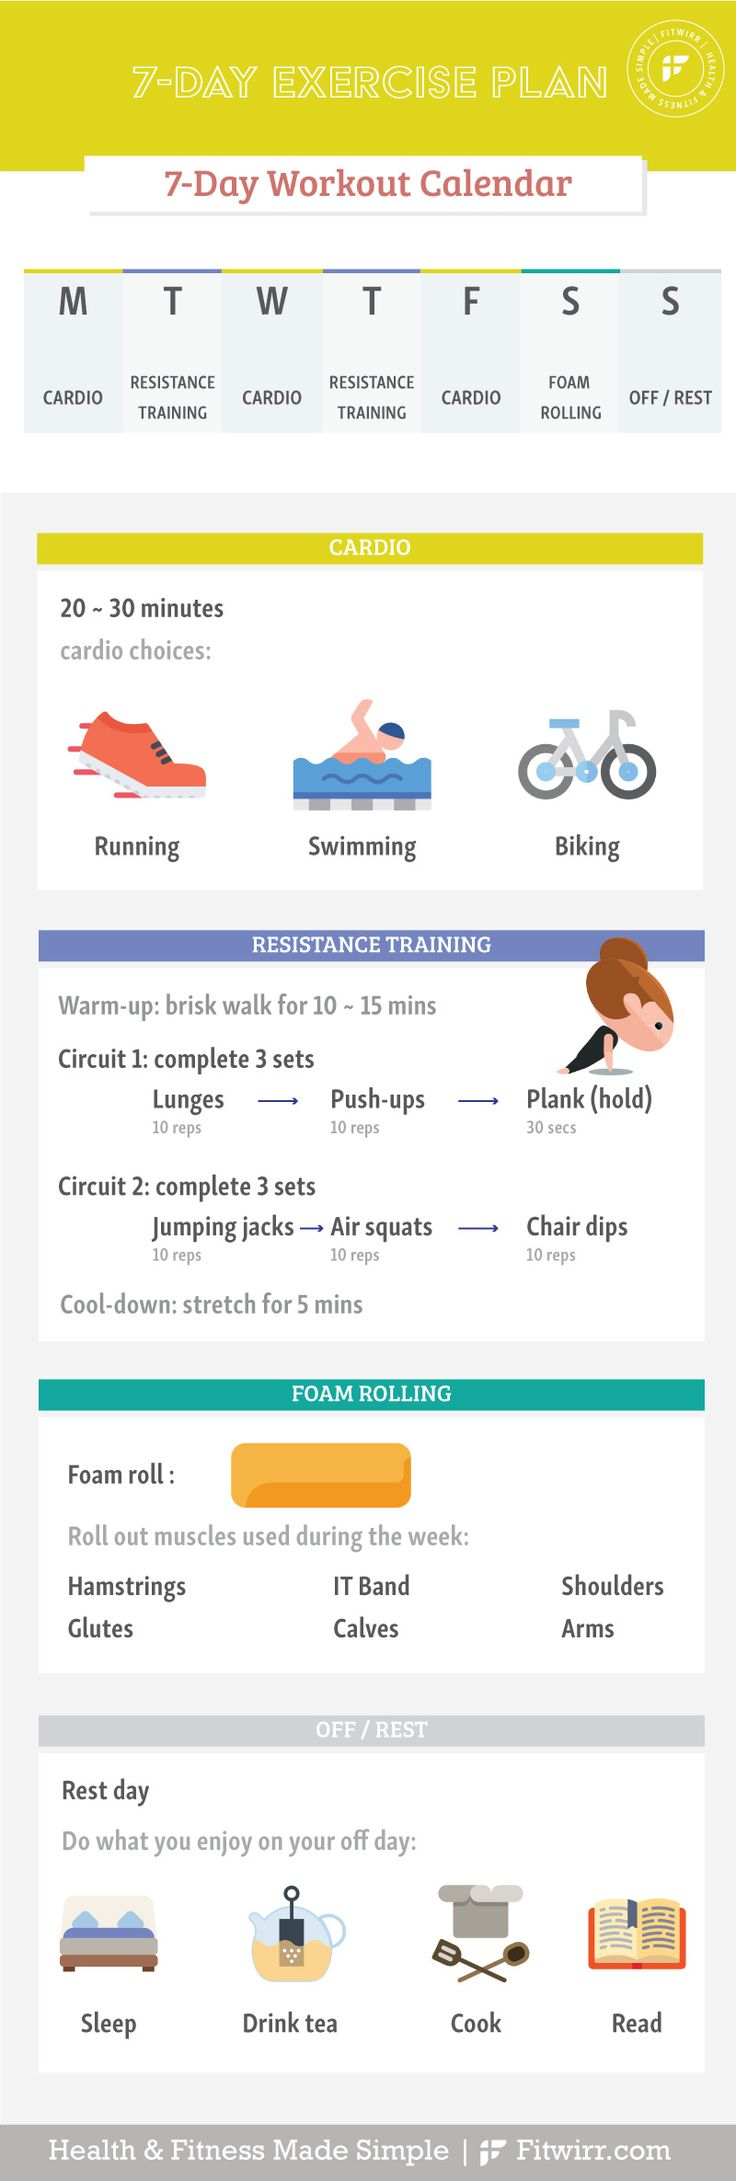 7-day workout plan for beginners